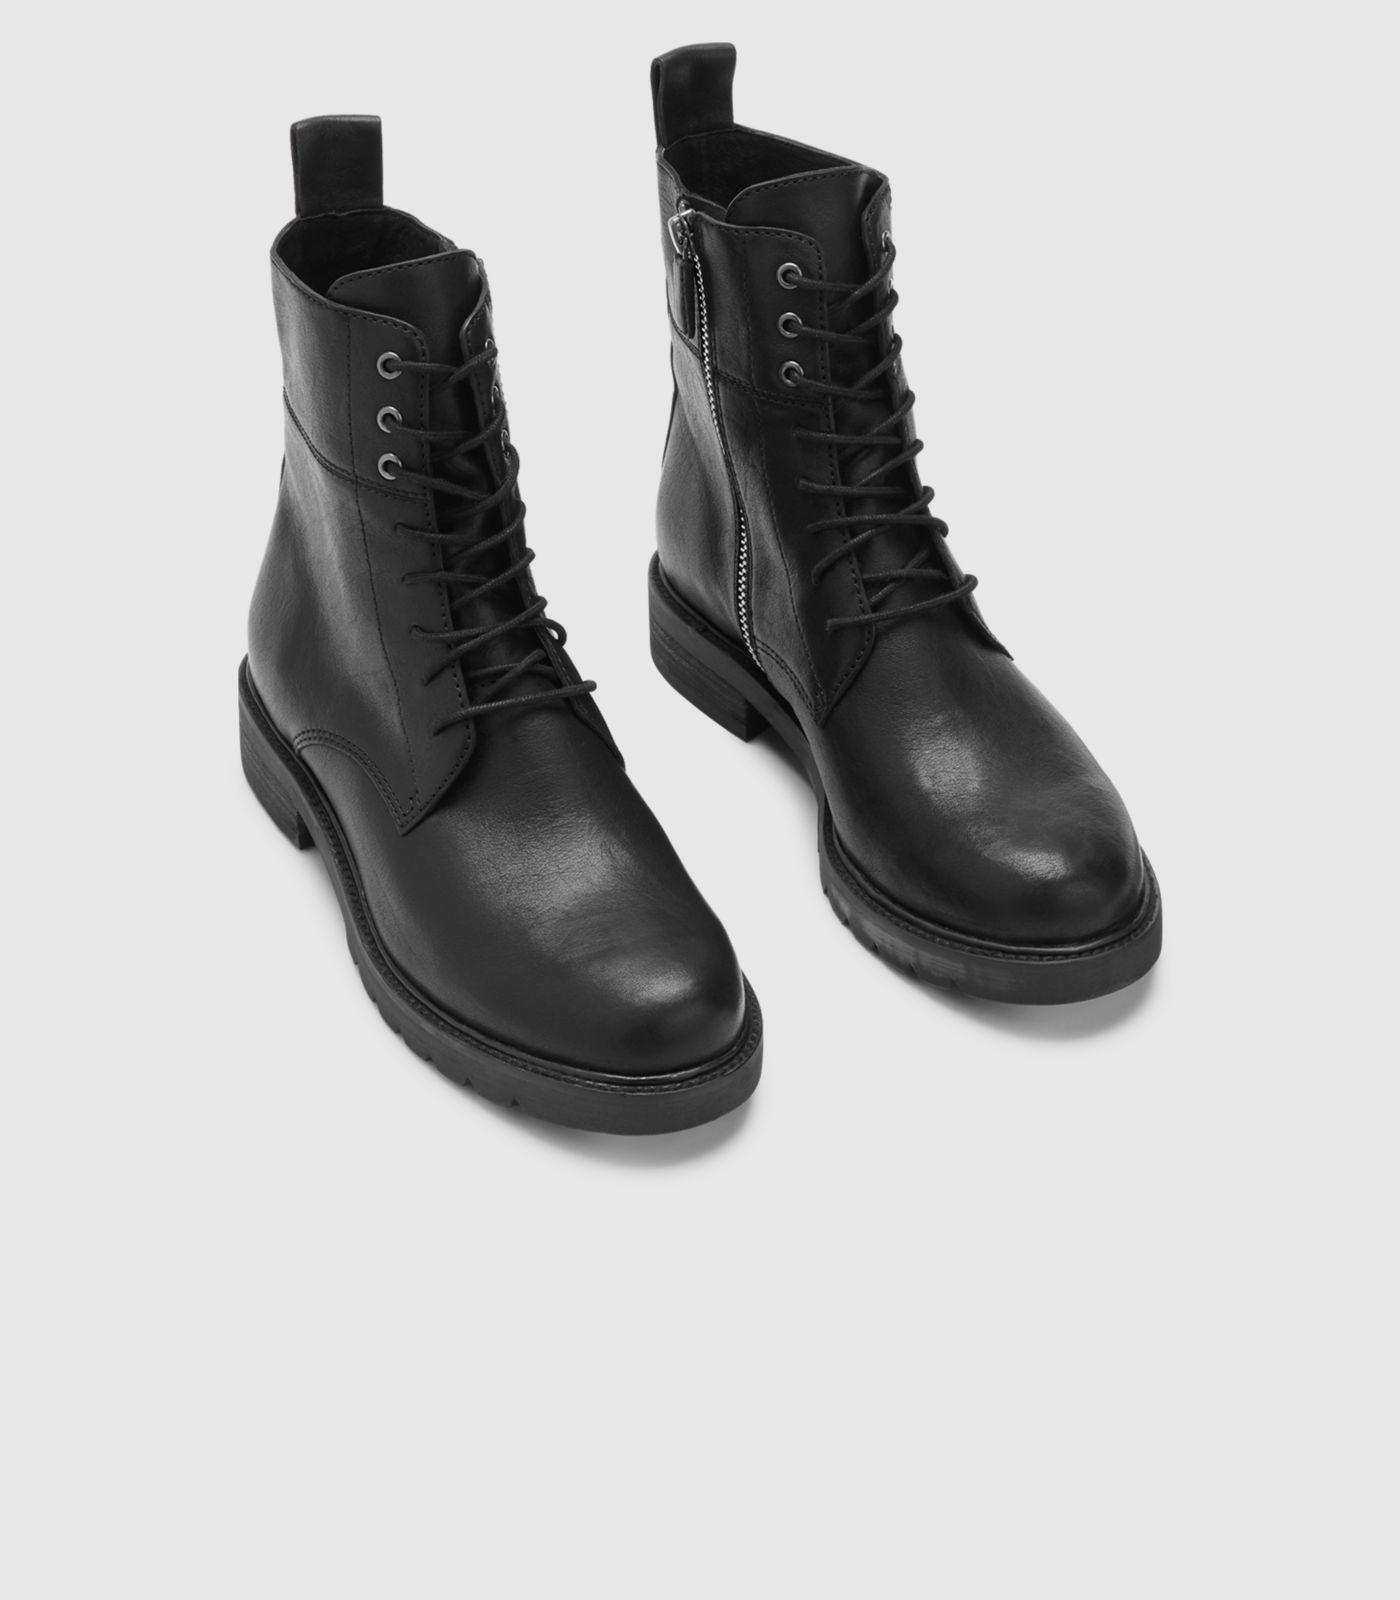 2a17e34d6a4c Eileen Fisher - Black Ripley Italian Leather Ankle Boot - Lyst. View  fullscreen